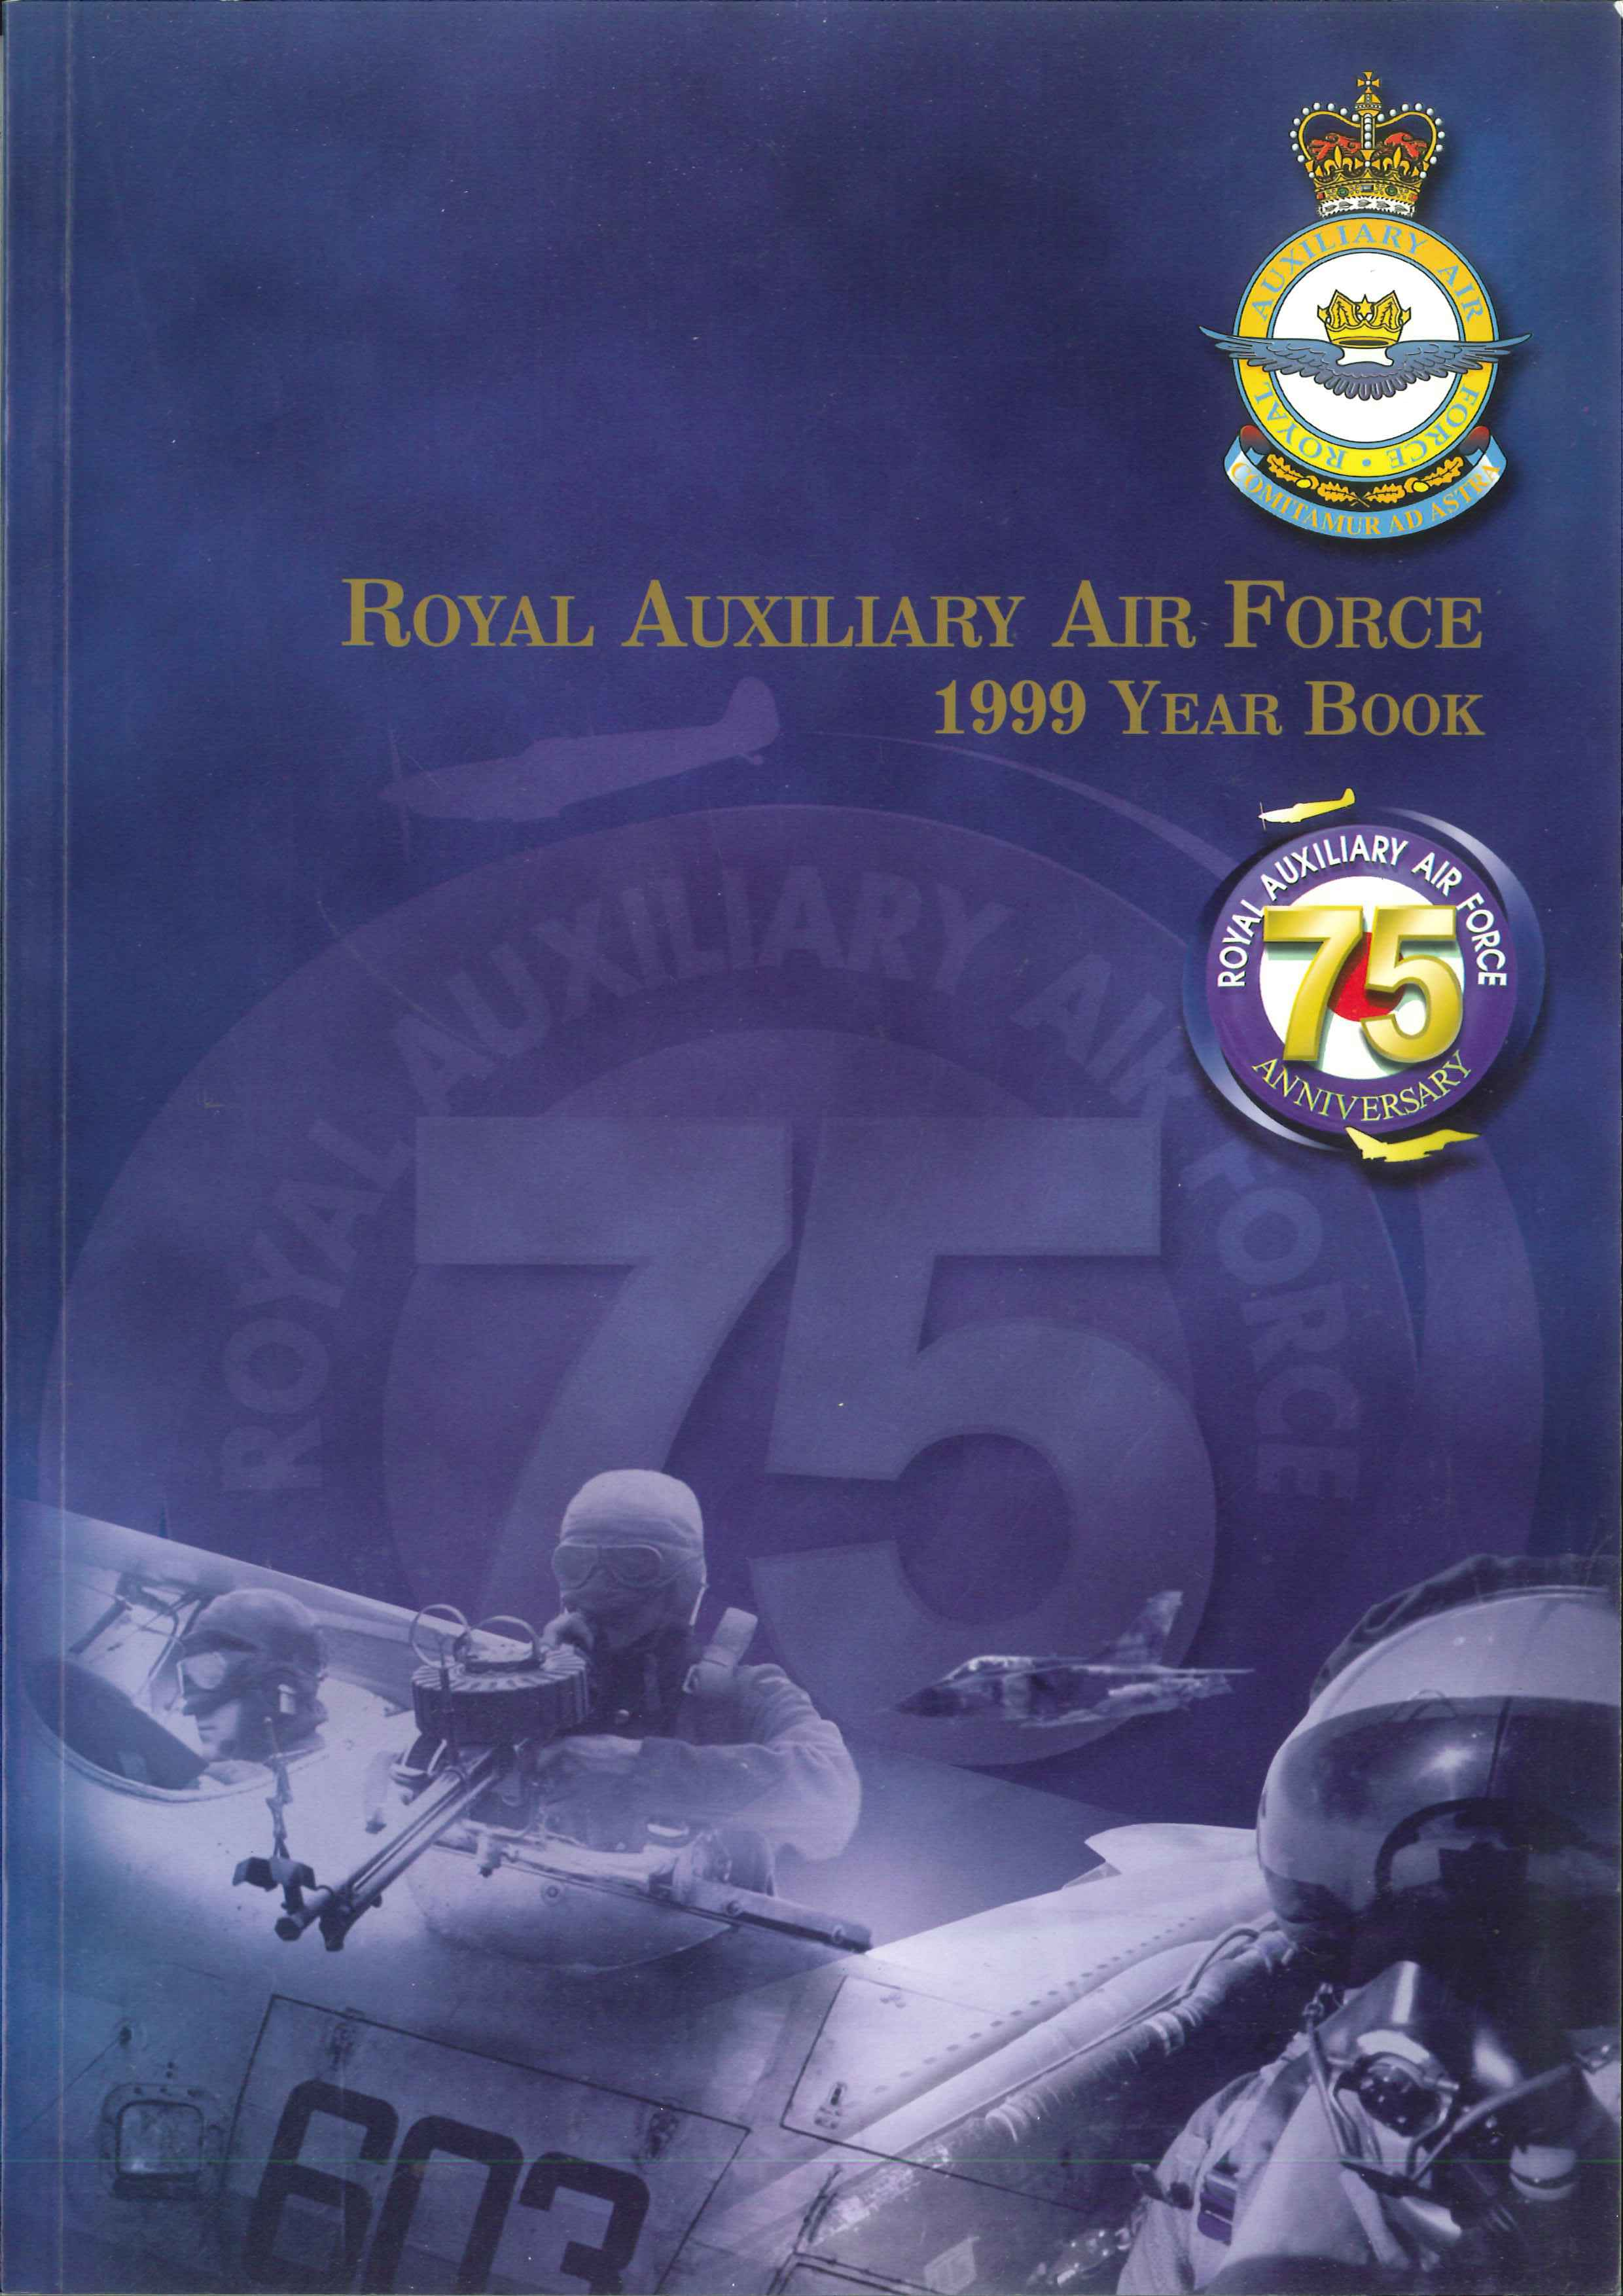 Royal Auxillary Air Force: 1999 Year Book